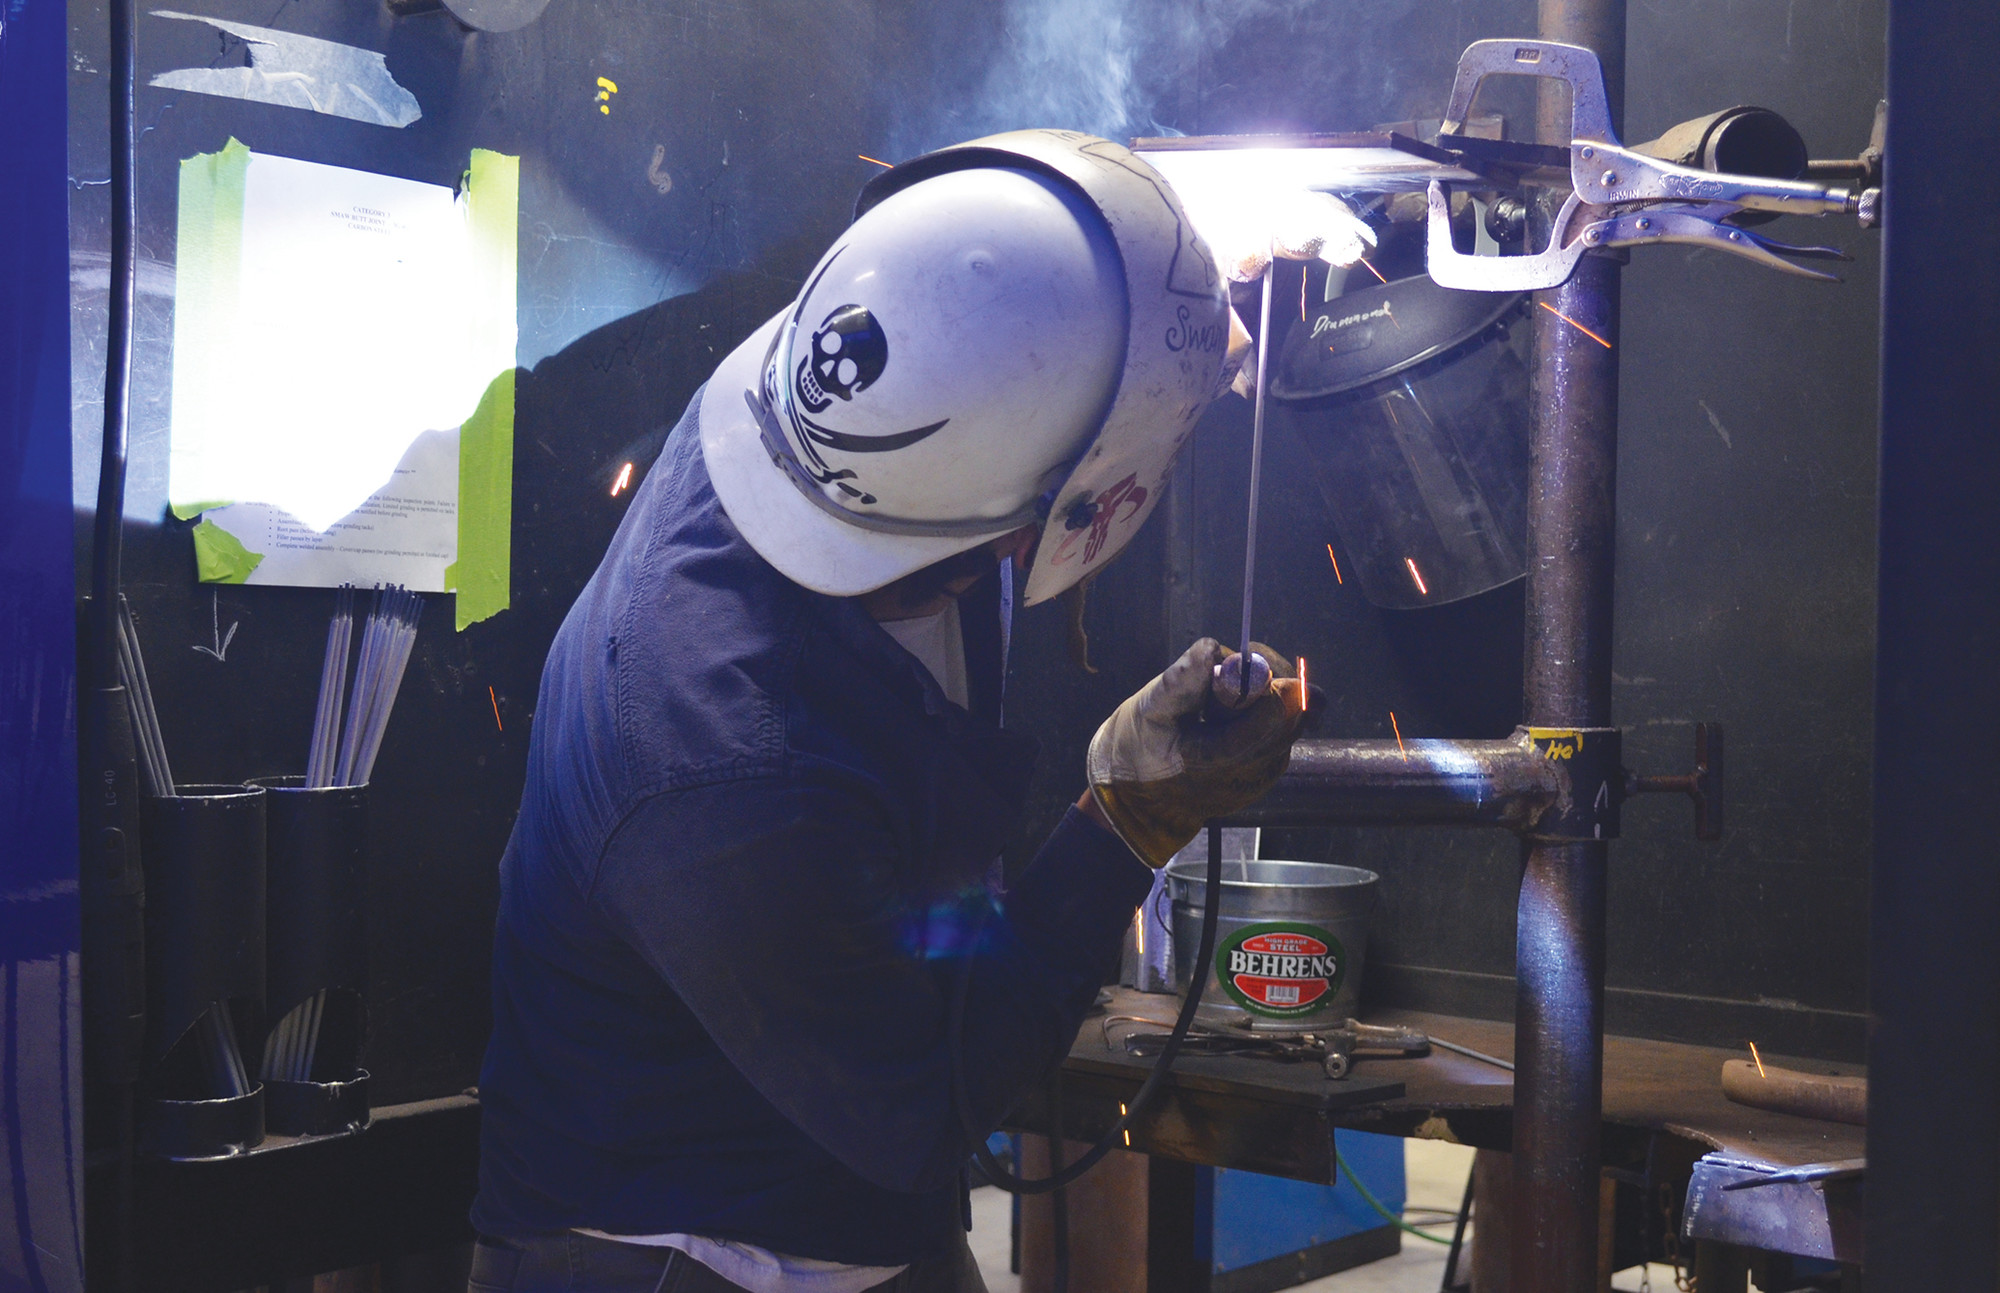 PHOTOS PROVIDEDCentral Carolina Technical College welding student David Drummond works on finishing his piece at the South Carolina Technical System's 36th Annual Welding Skills Competition held at CCTC's Main Campus on April 19 and 20.